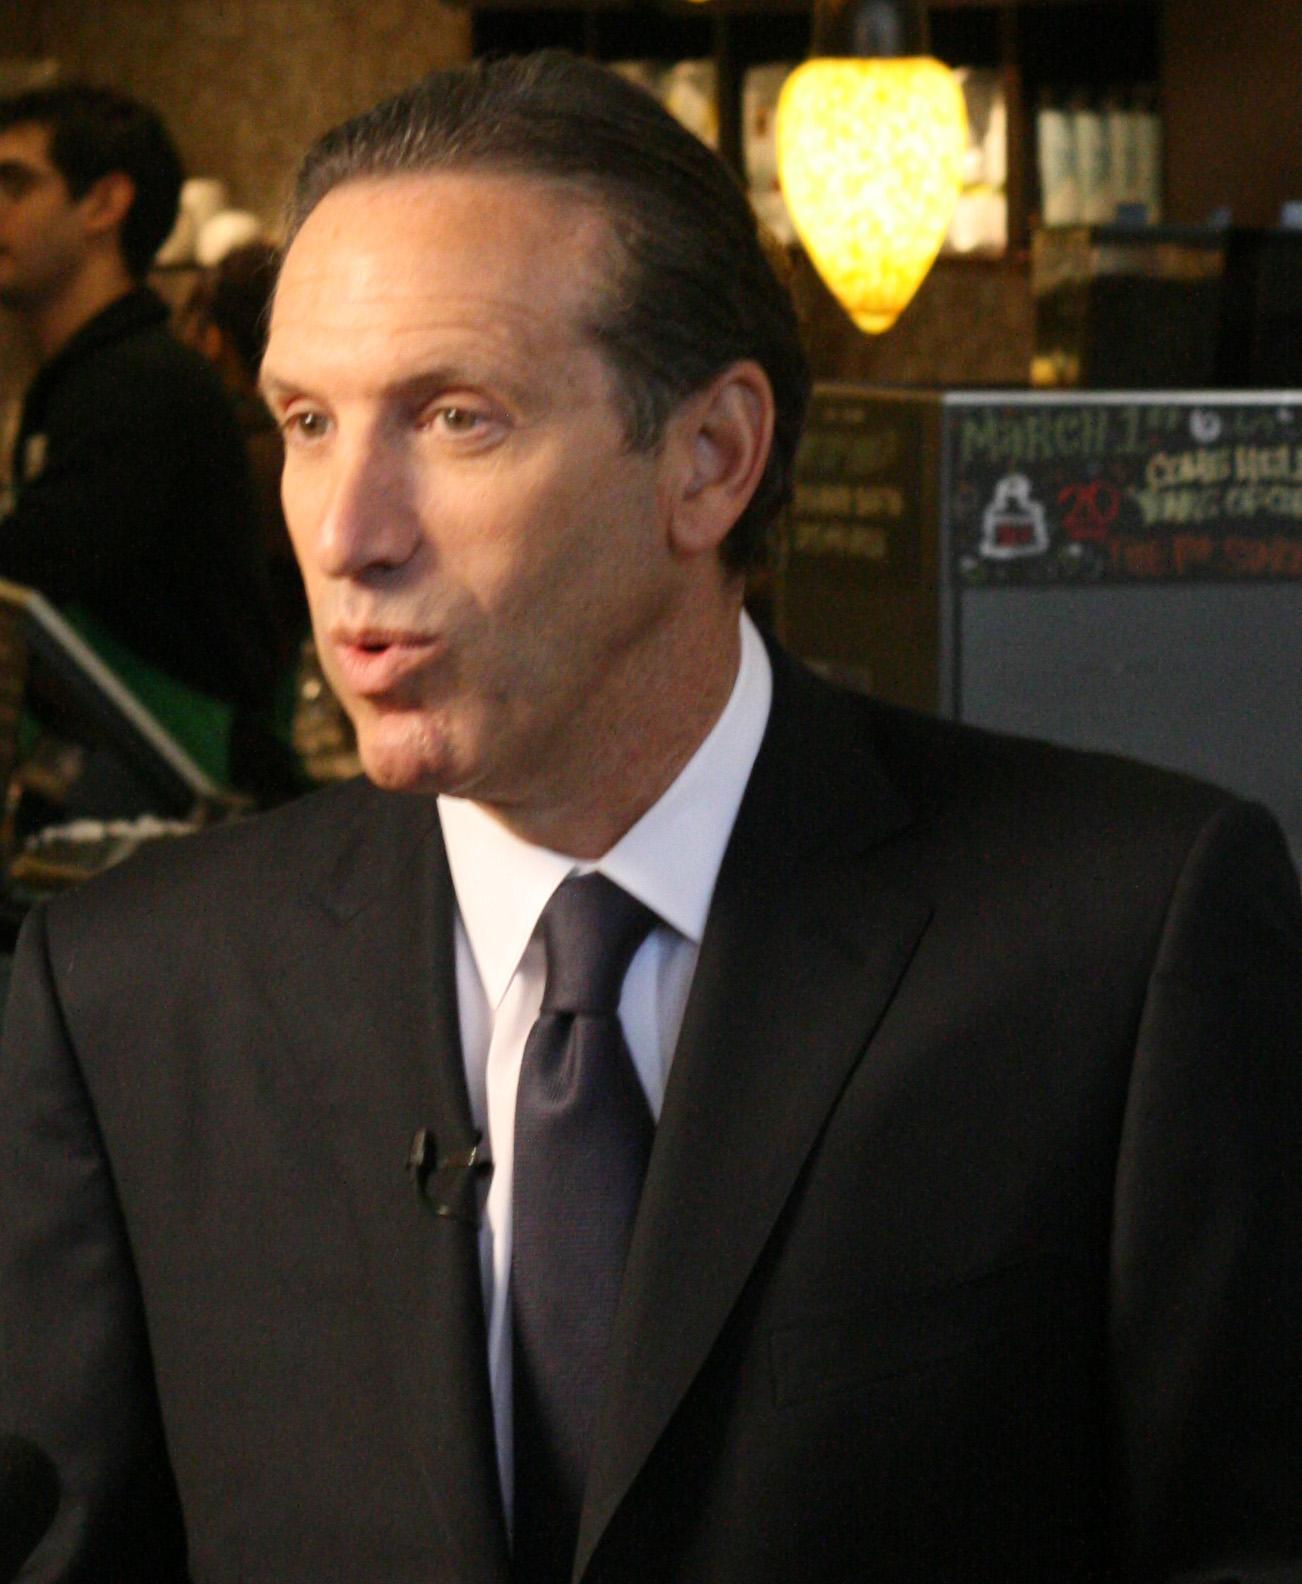 Investigation Of The Harvard Business School Case Study quotStarbucks Starbucks Chairman Howard Shultz Talks Media Vancouver Water Investigation Harvard Business School Case Study Starbucks